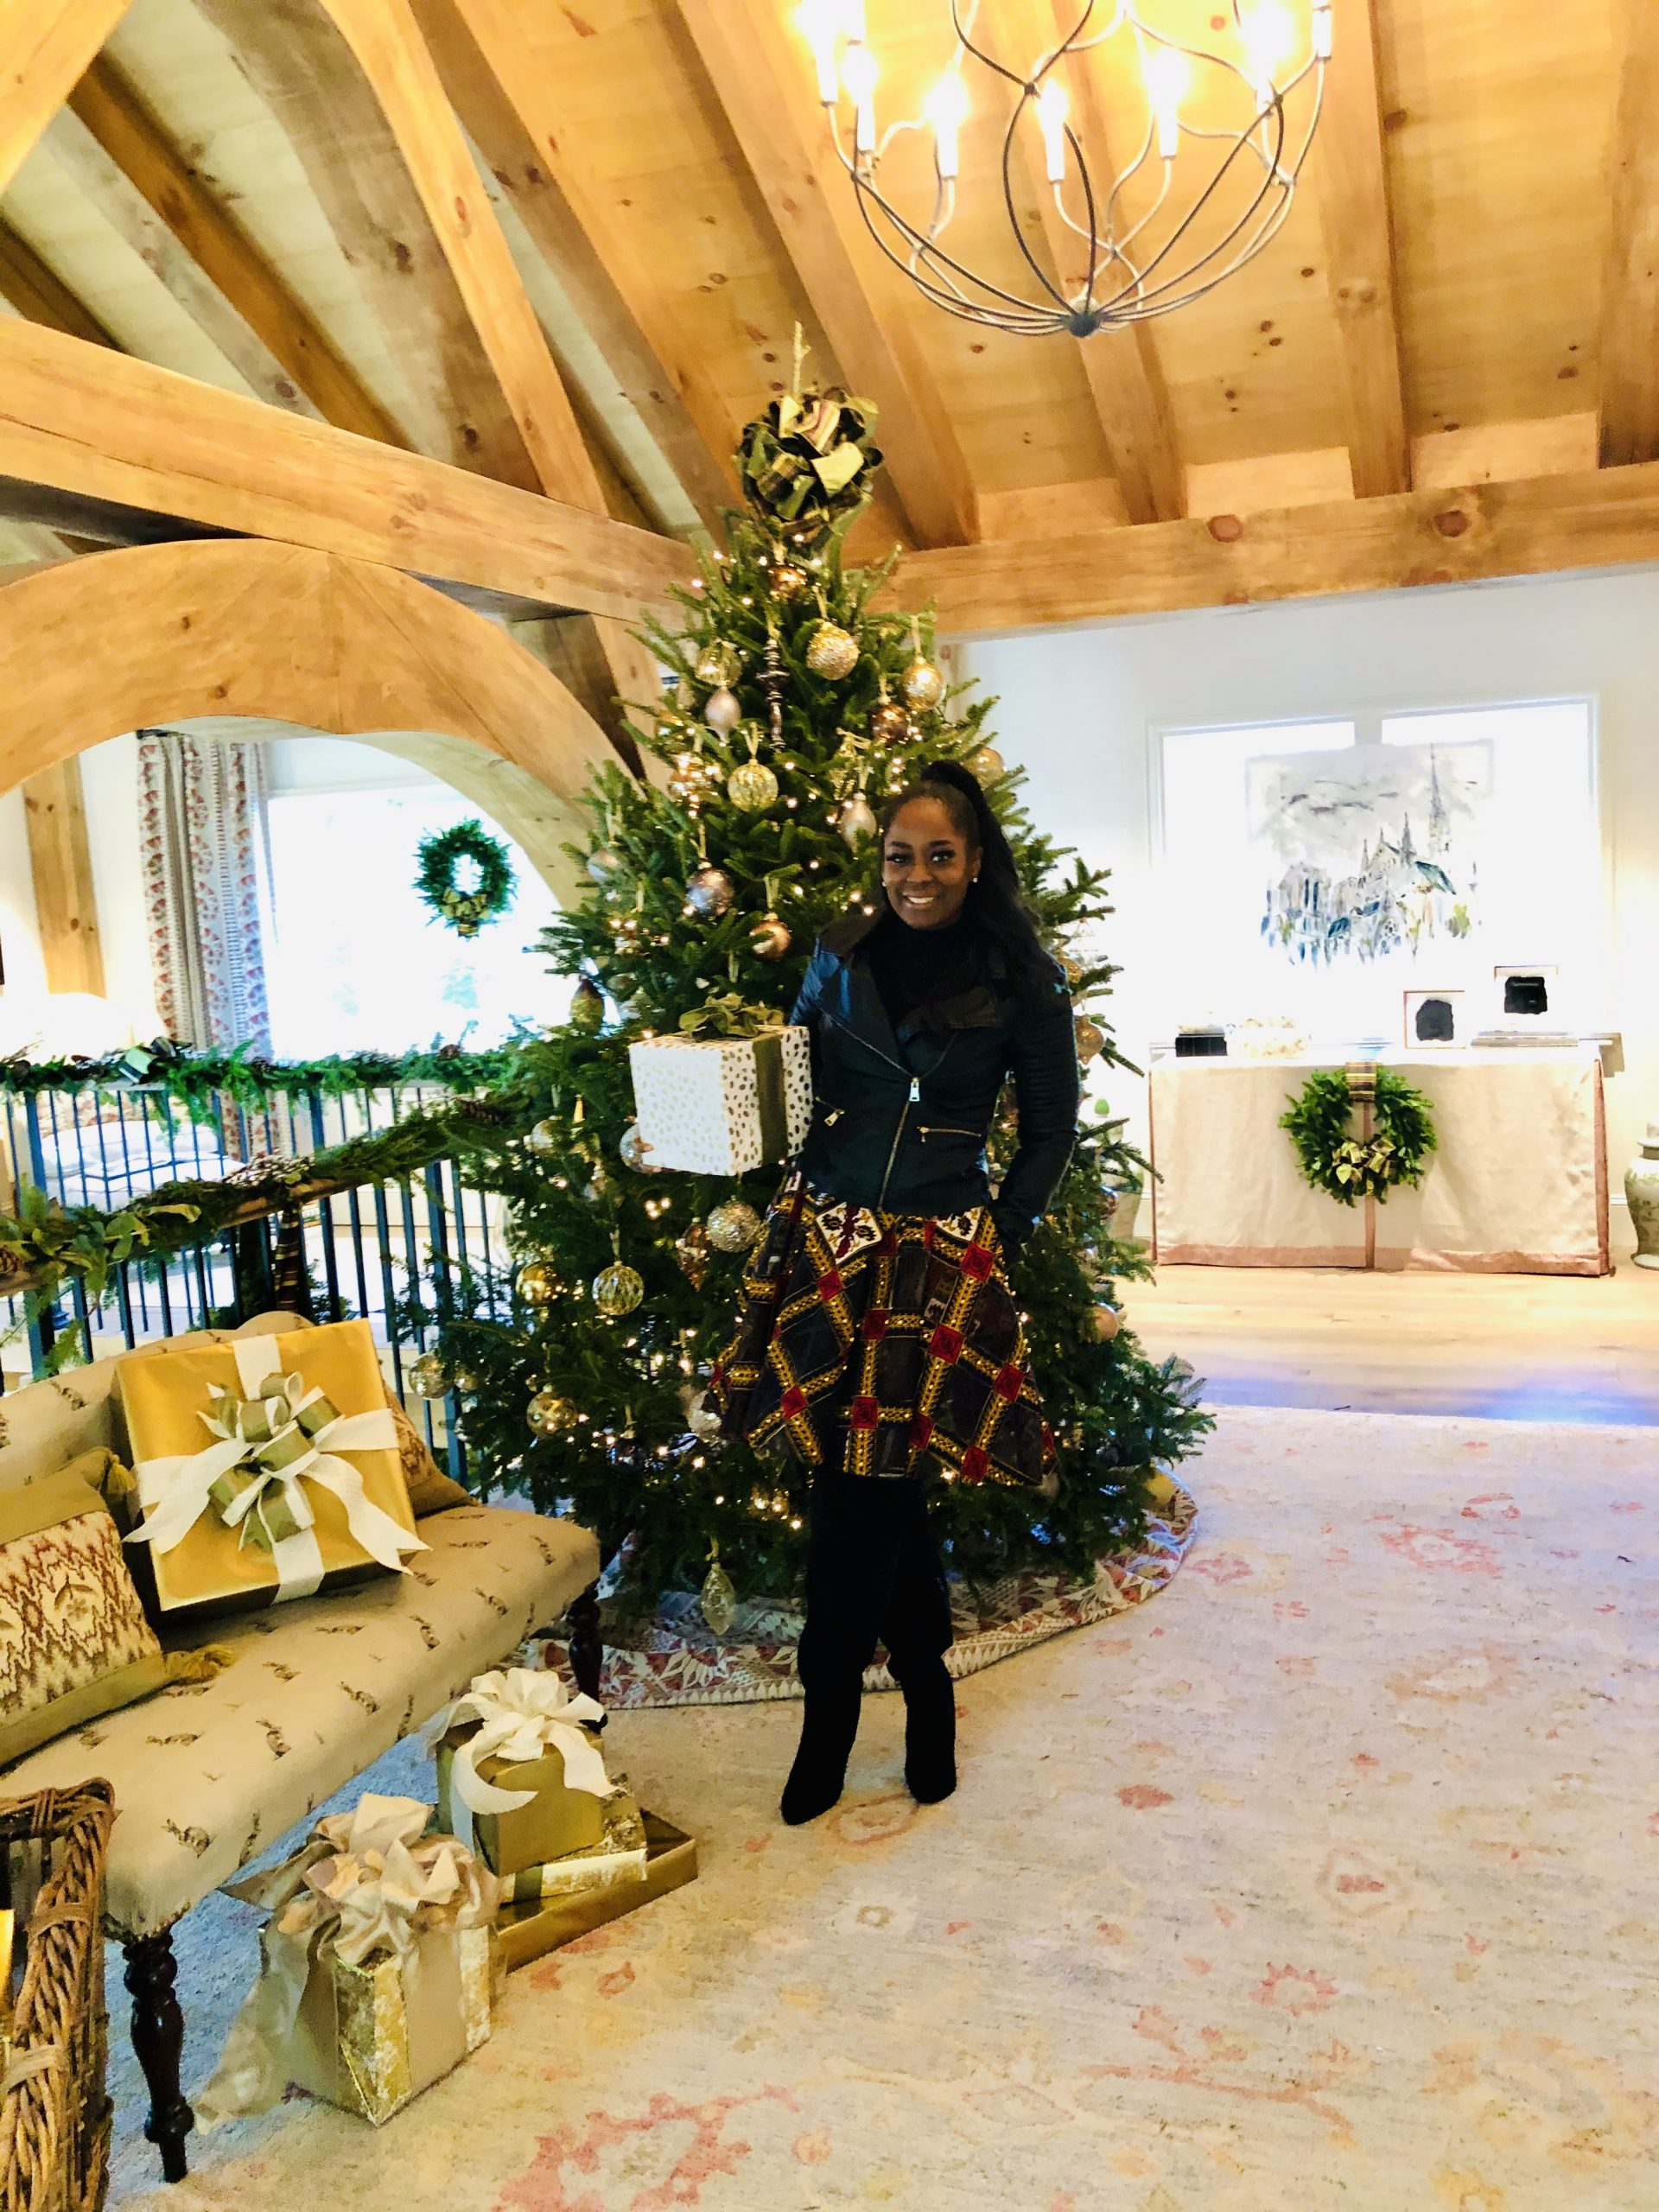 Atlanta Homes & Lifestyles Presents Home For The Holidays Showhouse